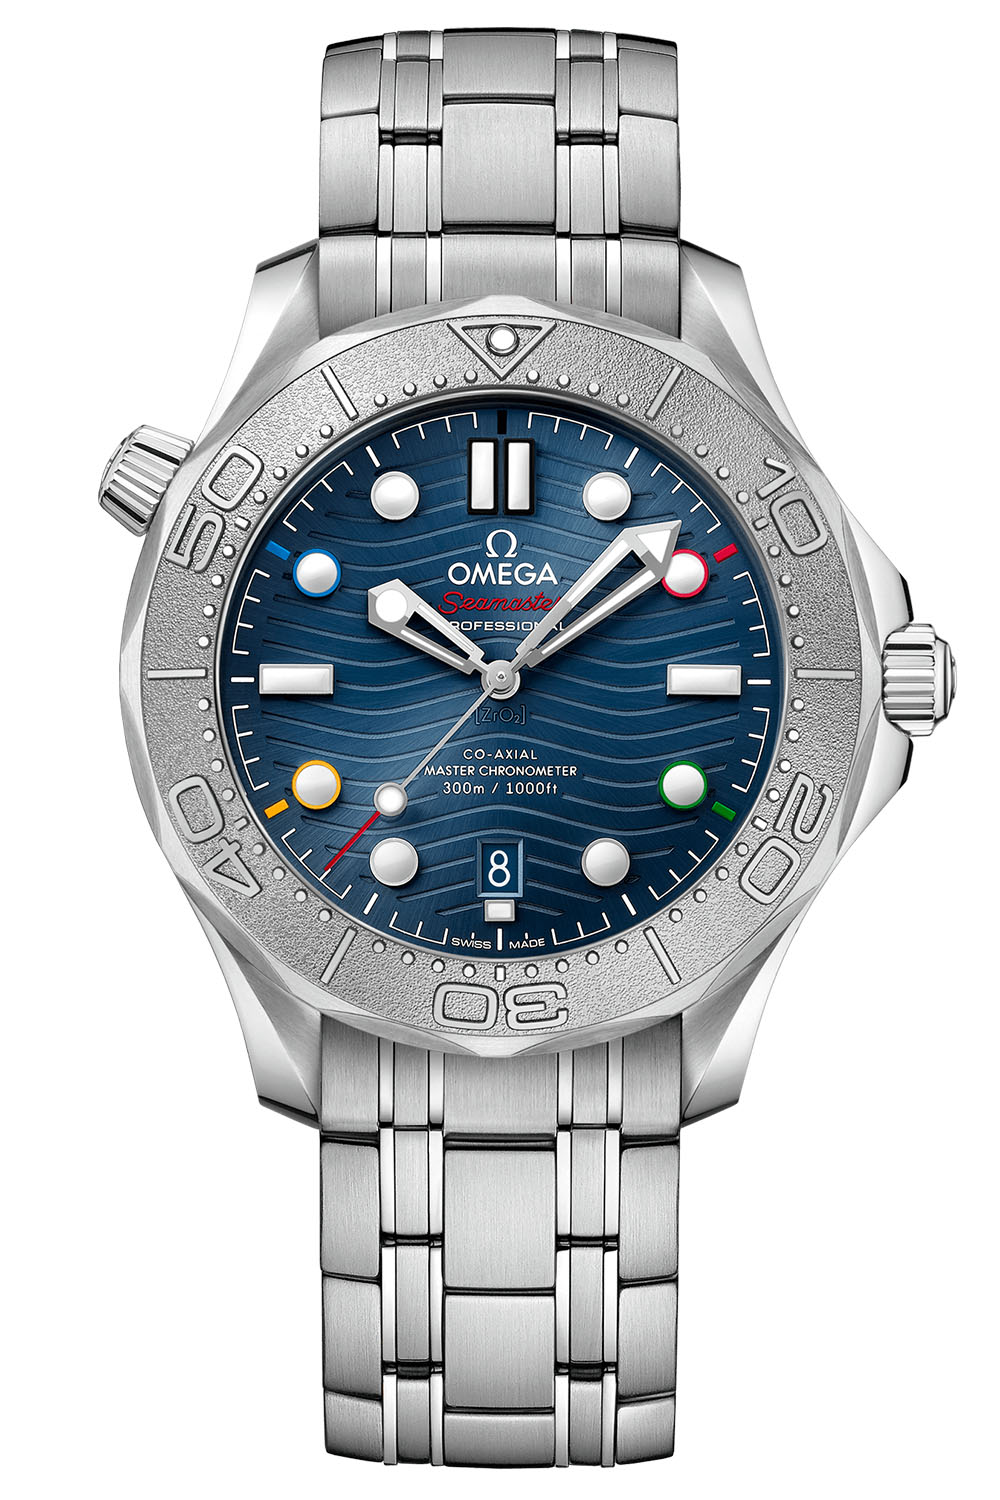 Omega Seamaster Diver 300M Beijing 2022 Special Edition 522-30-42-20-03-001 - 6